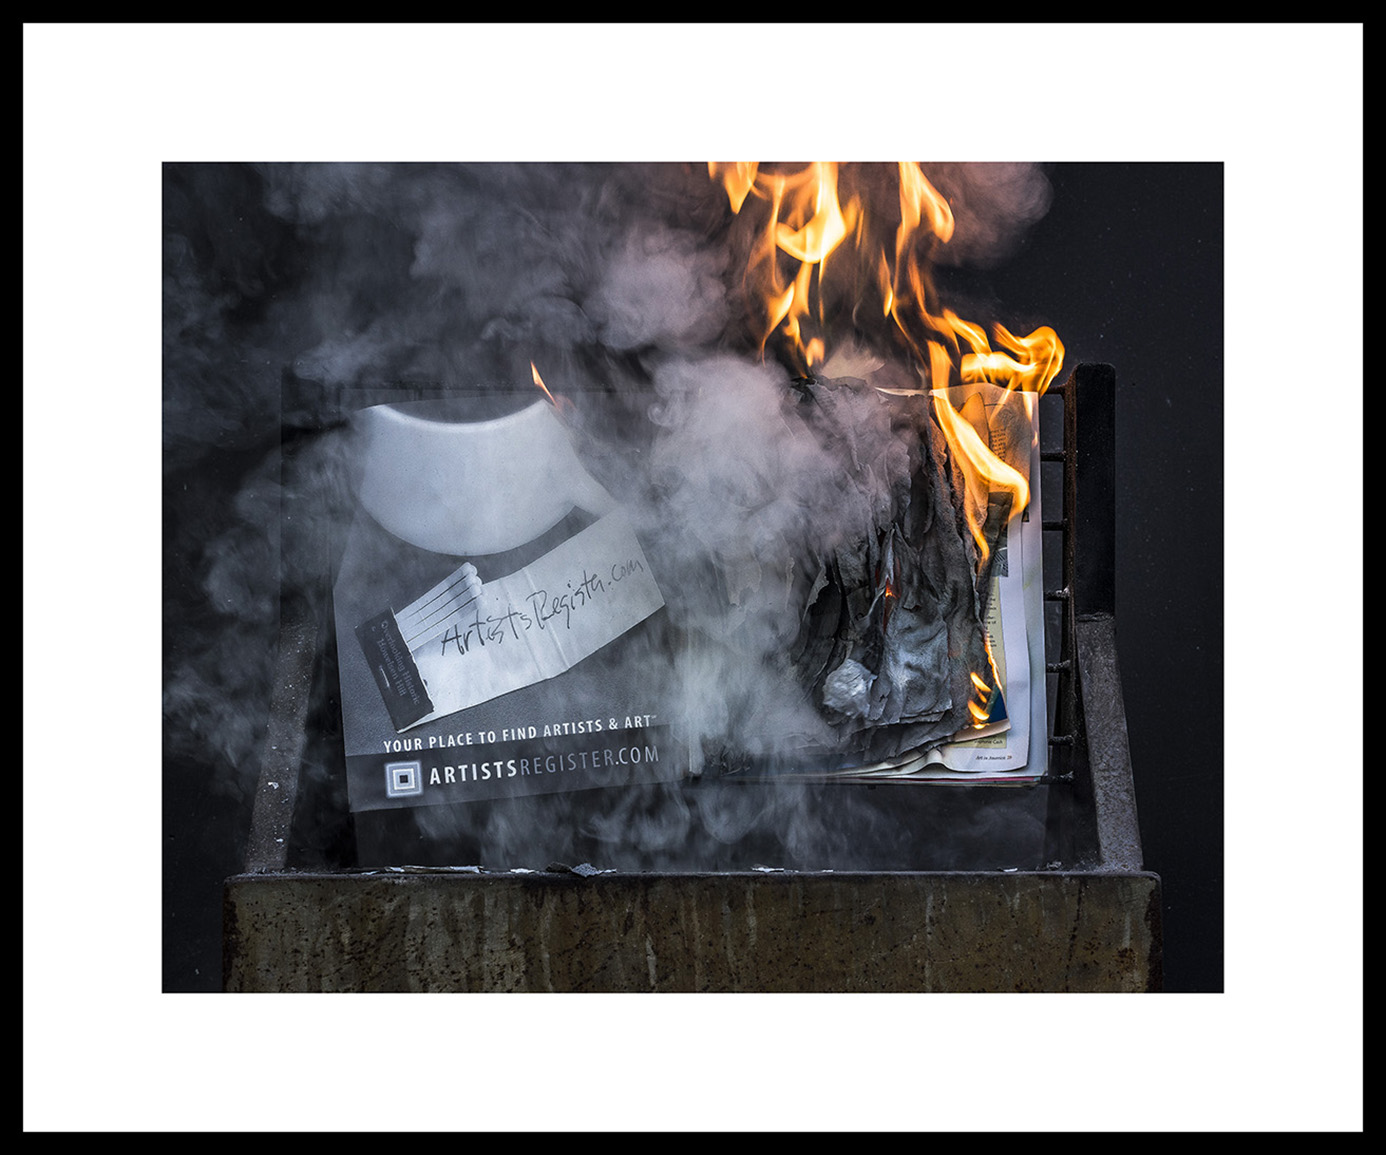 BWGPS_Gregory Perkel_Savonarola Suite_AiA Dec 2003 #0280F, 2019_Archival ink jet print on Epson exhibition fiber paper_Framed_Edition 5_2AP_�3,000_Courtesy of the Artist and Black & White Project Sp.jpg